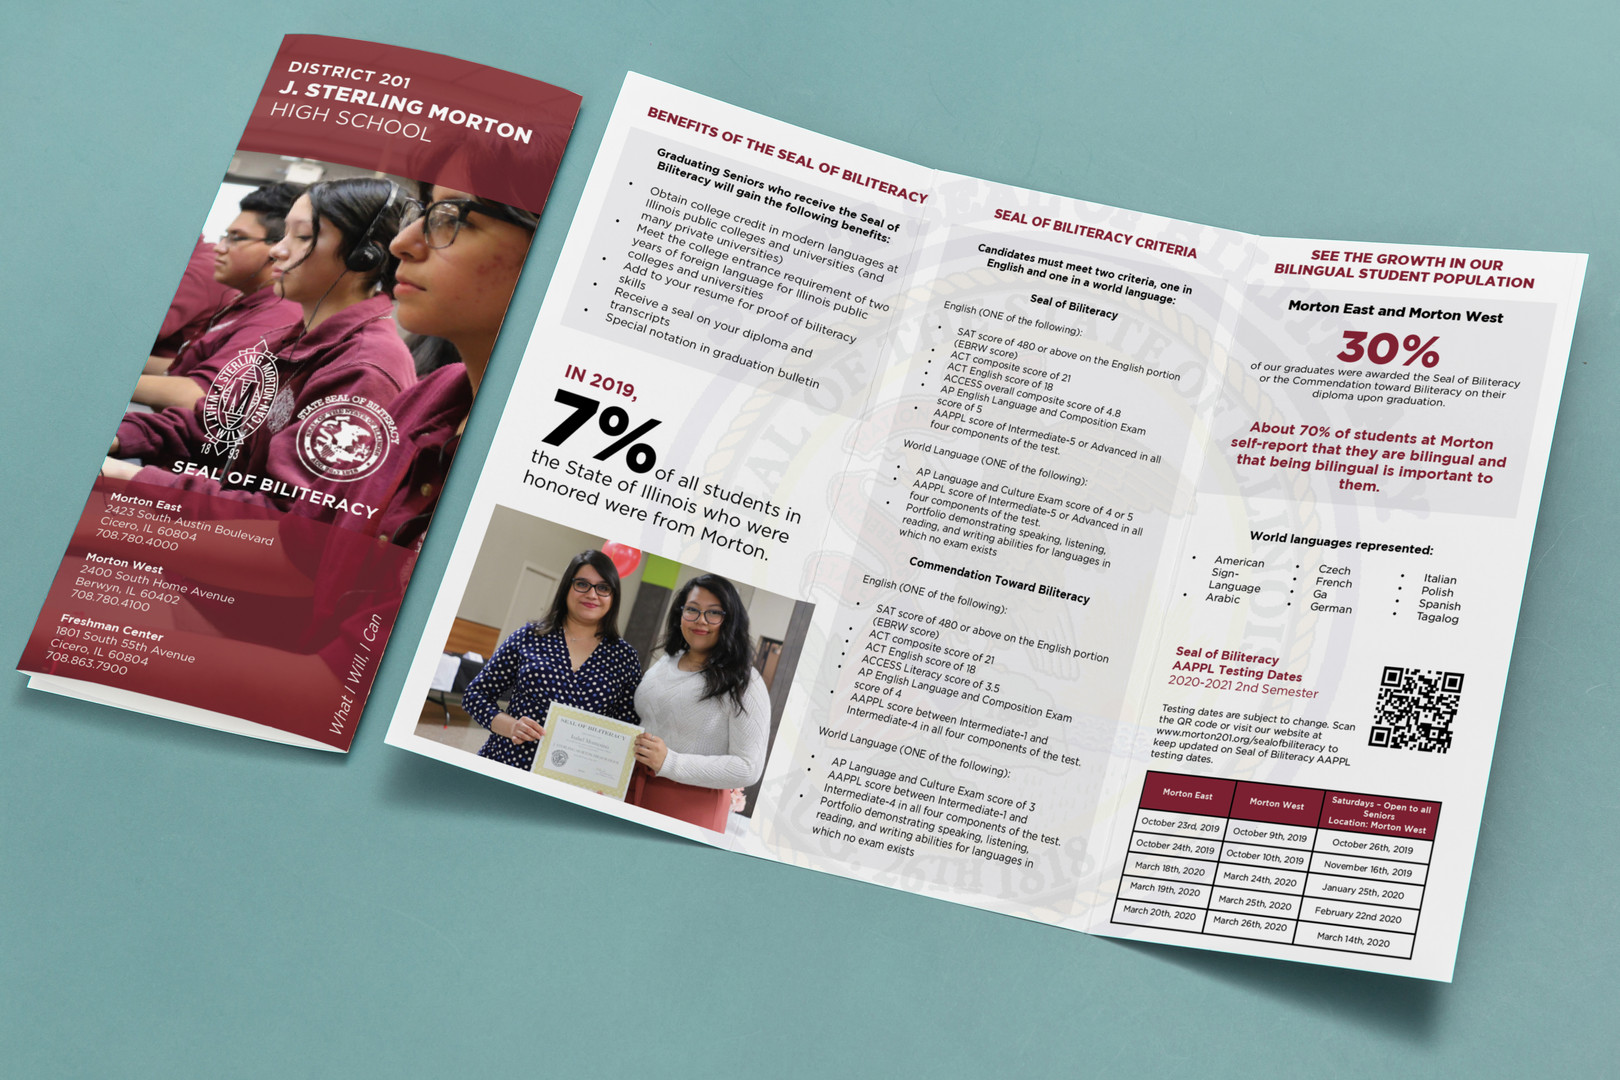 Morton District 201 Seal of Biliteracy Promotional Brochure